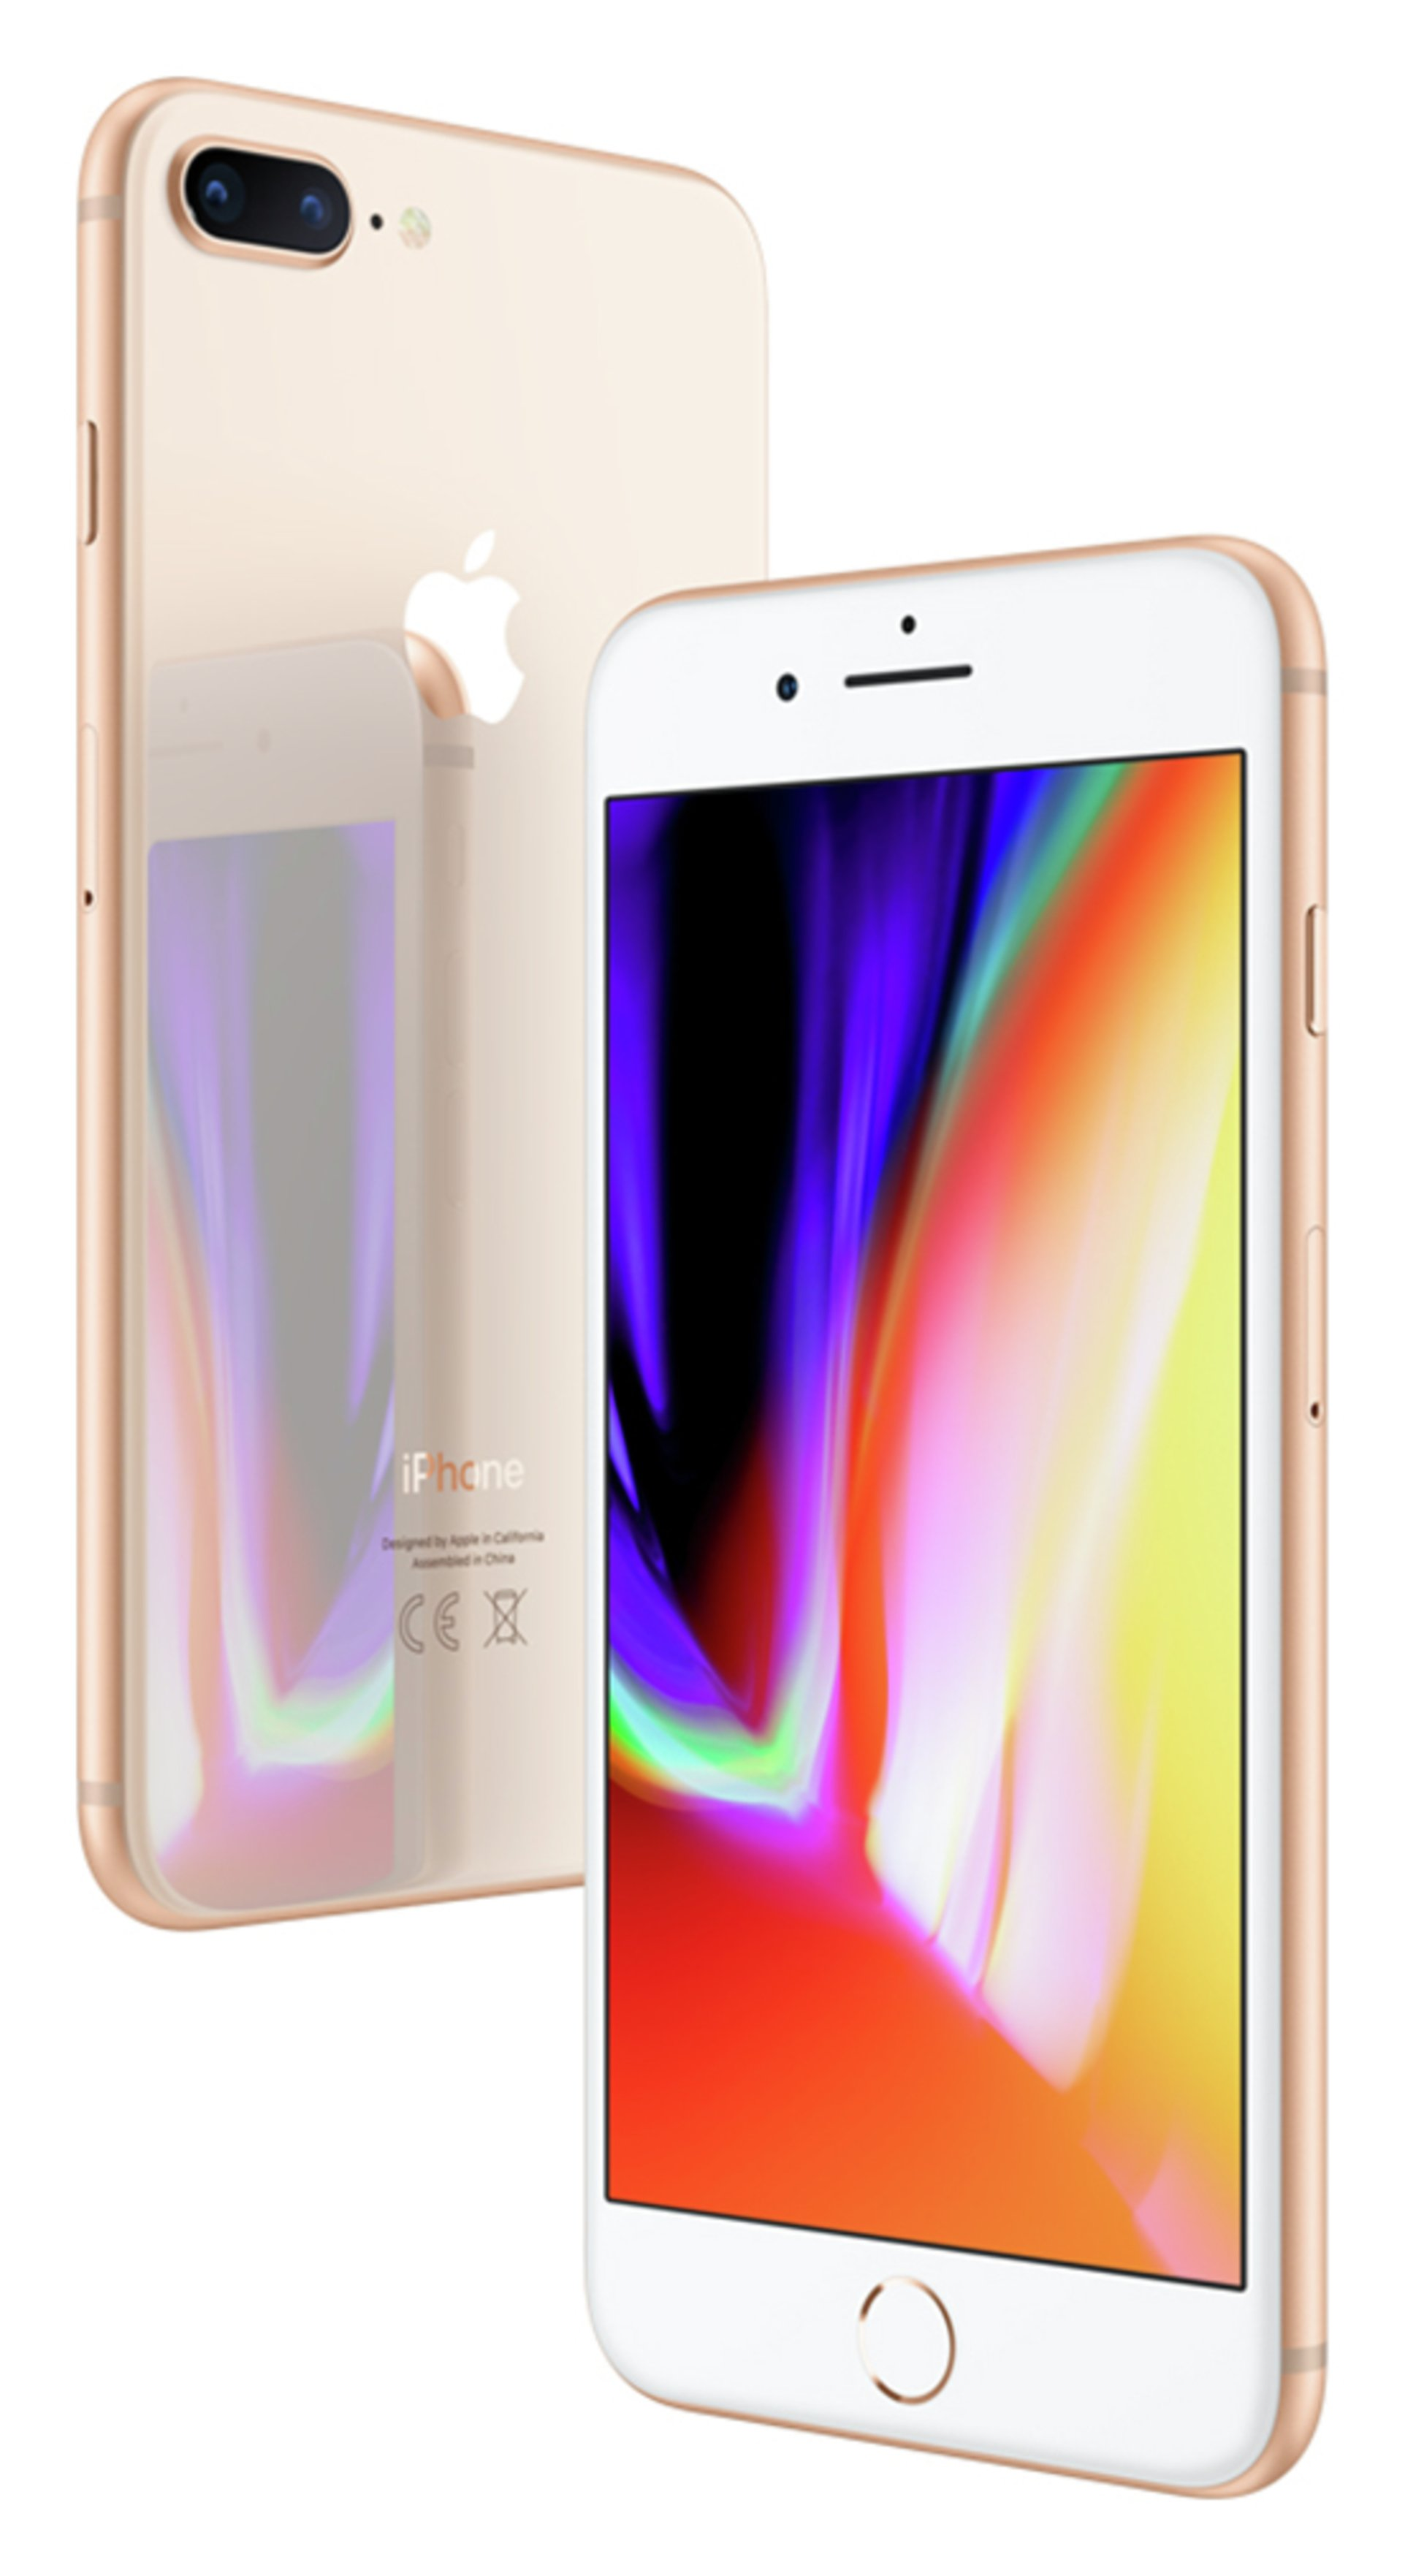 Apple Sim Free iPhone 8 Plus 256GB Mobile Phone - Gold